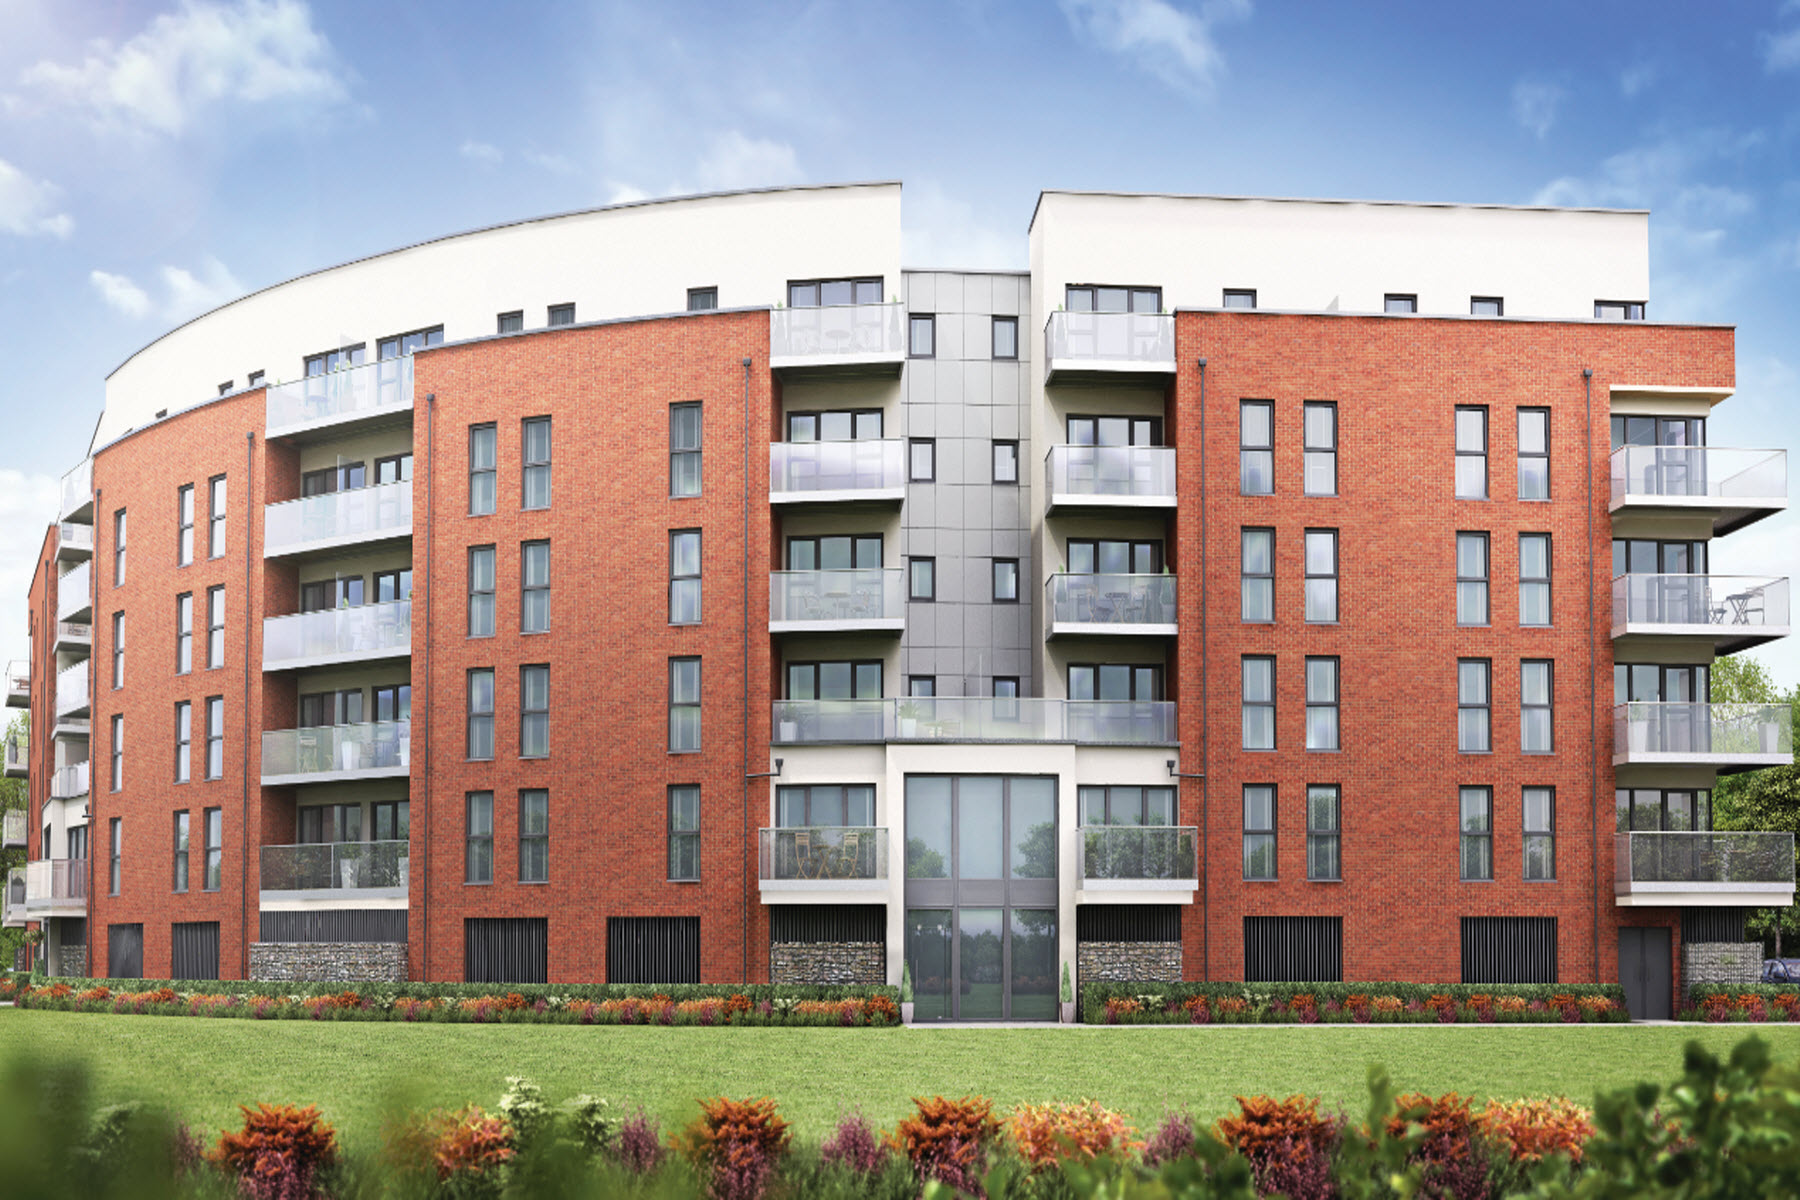 Artist impression of Brunel House, Academy Central